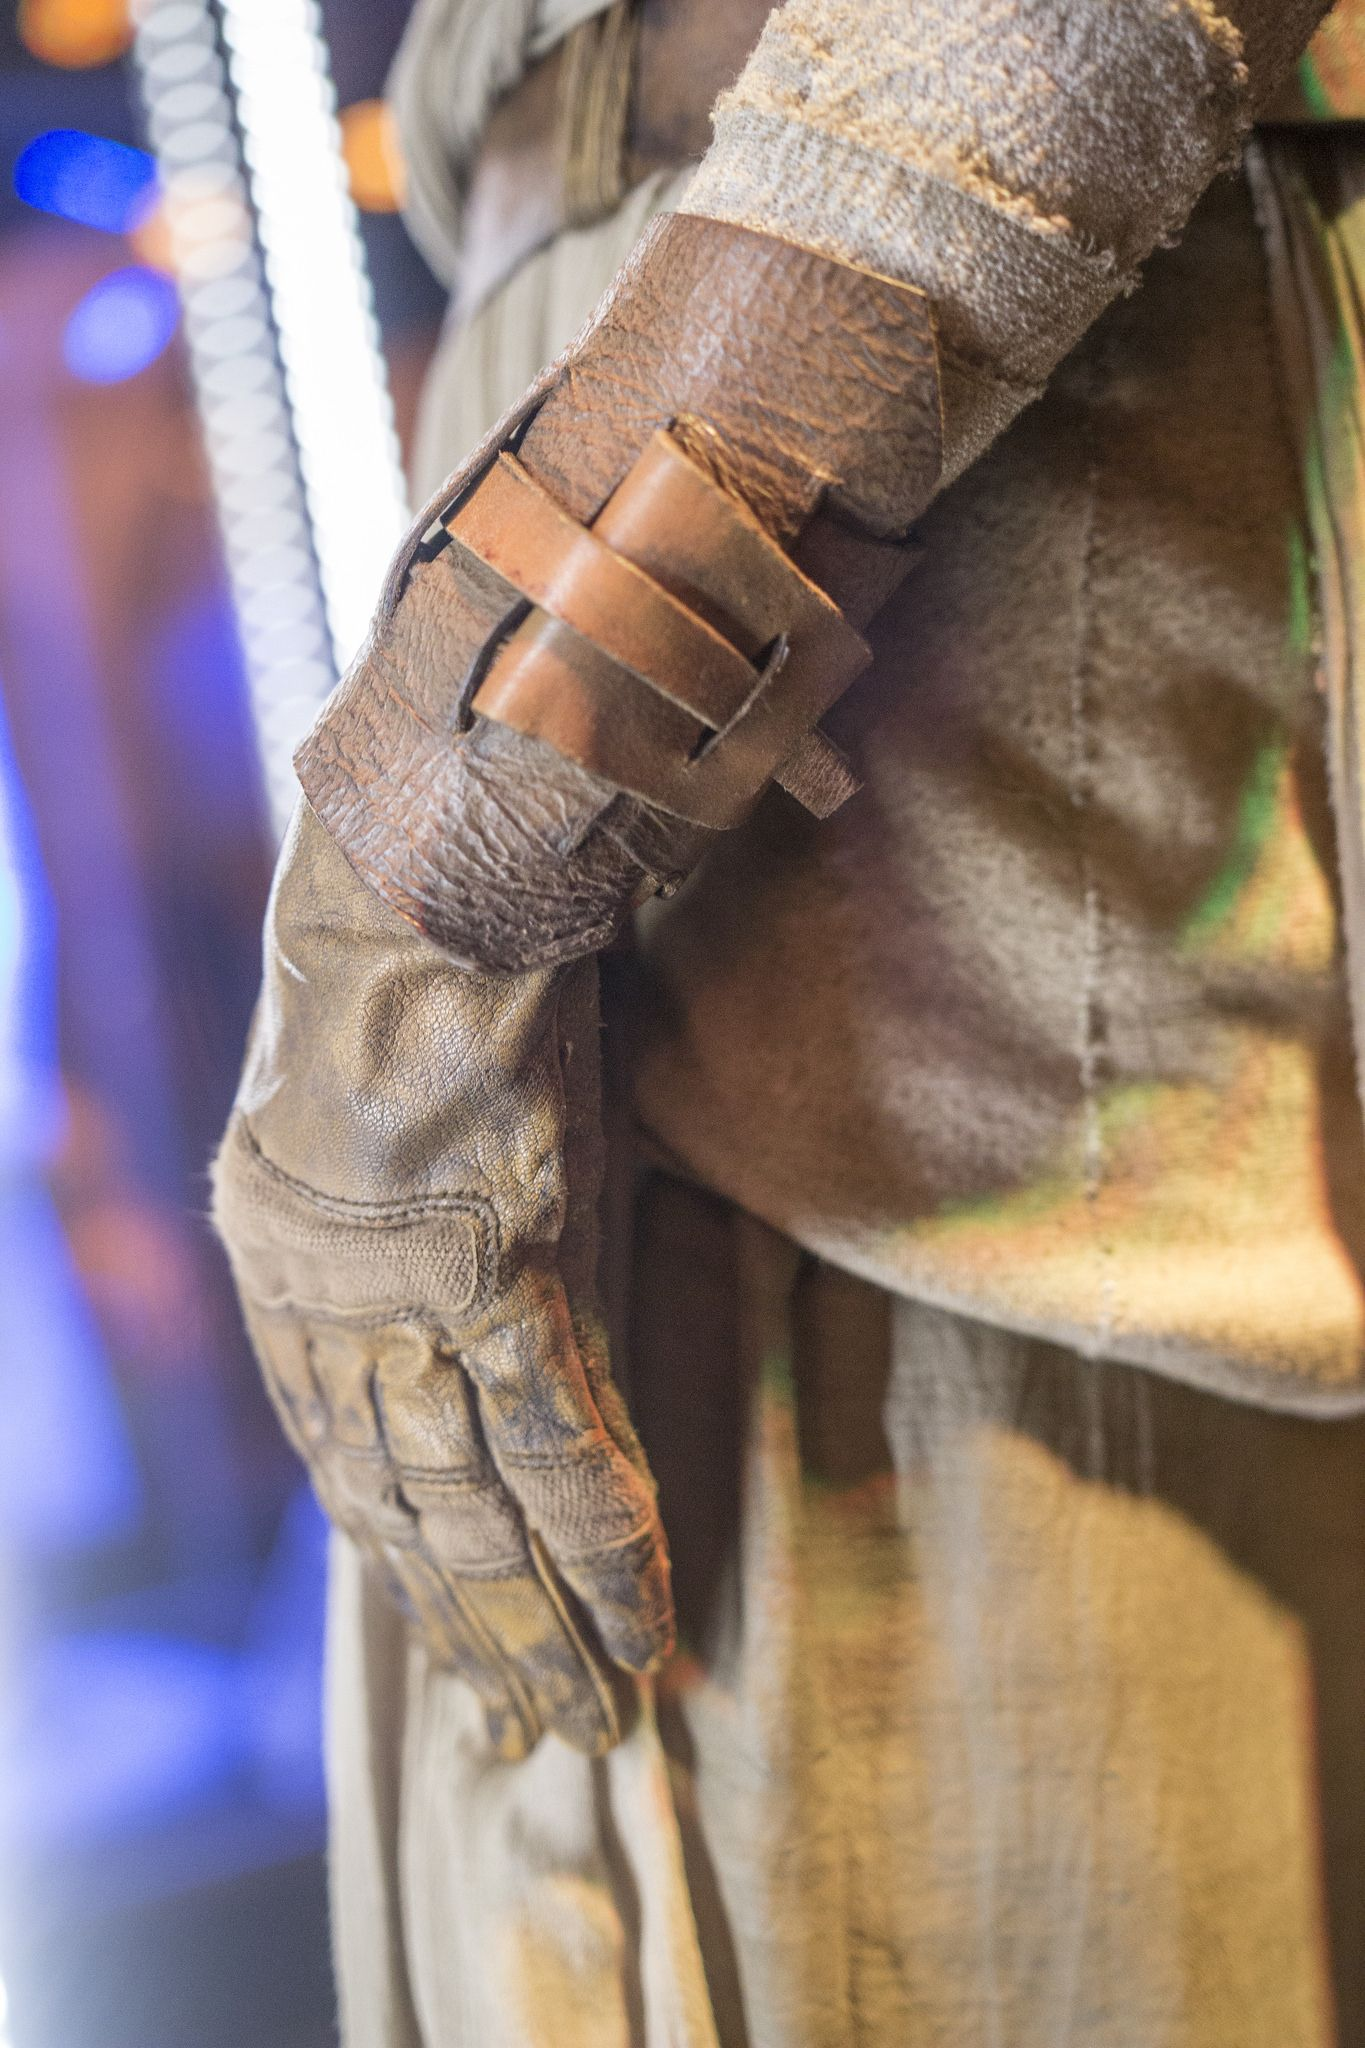 Rey Force Awakens - HQ Photo - Left Glove